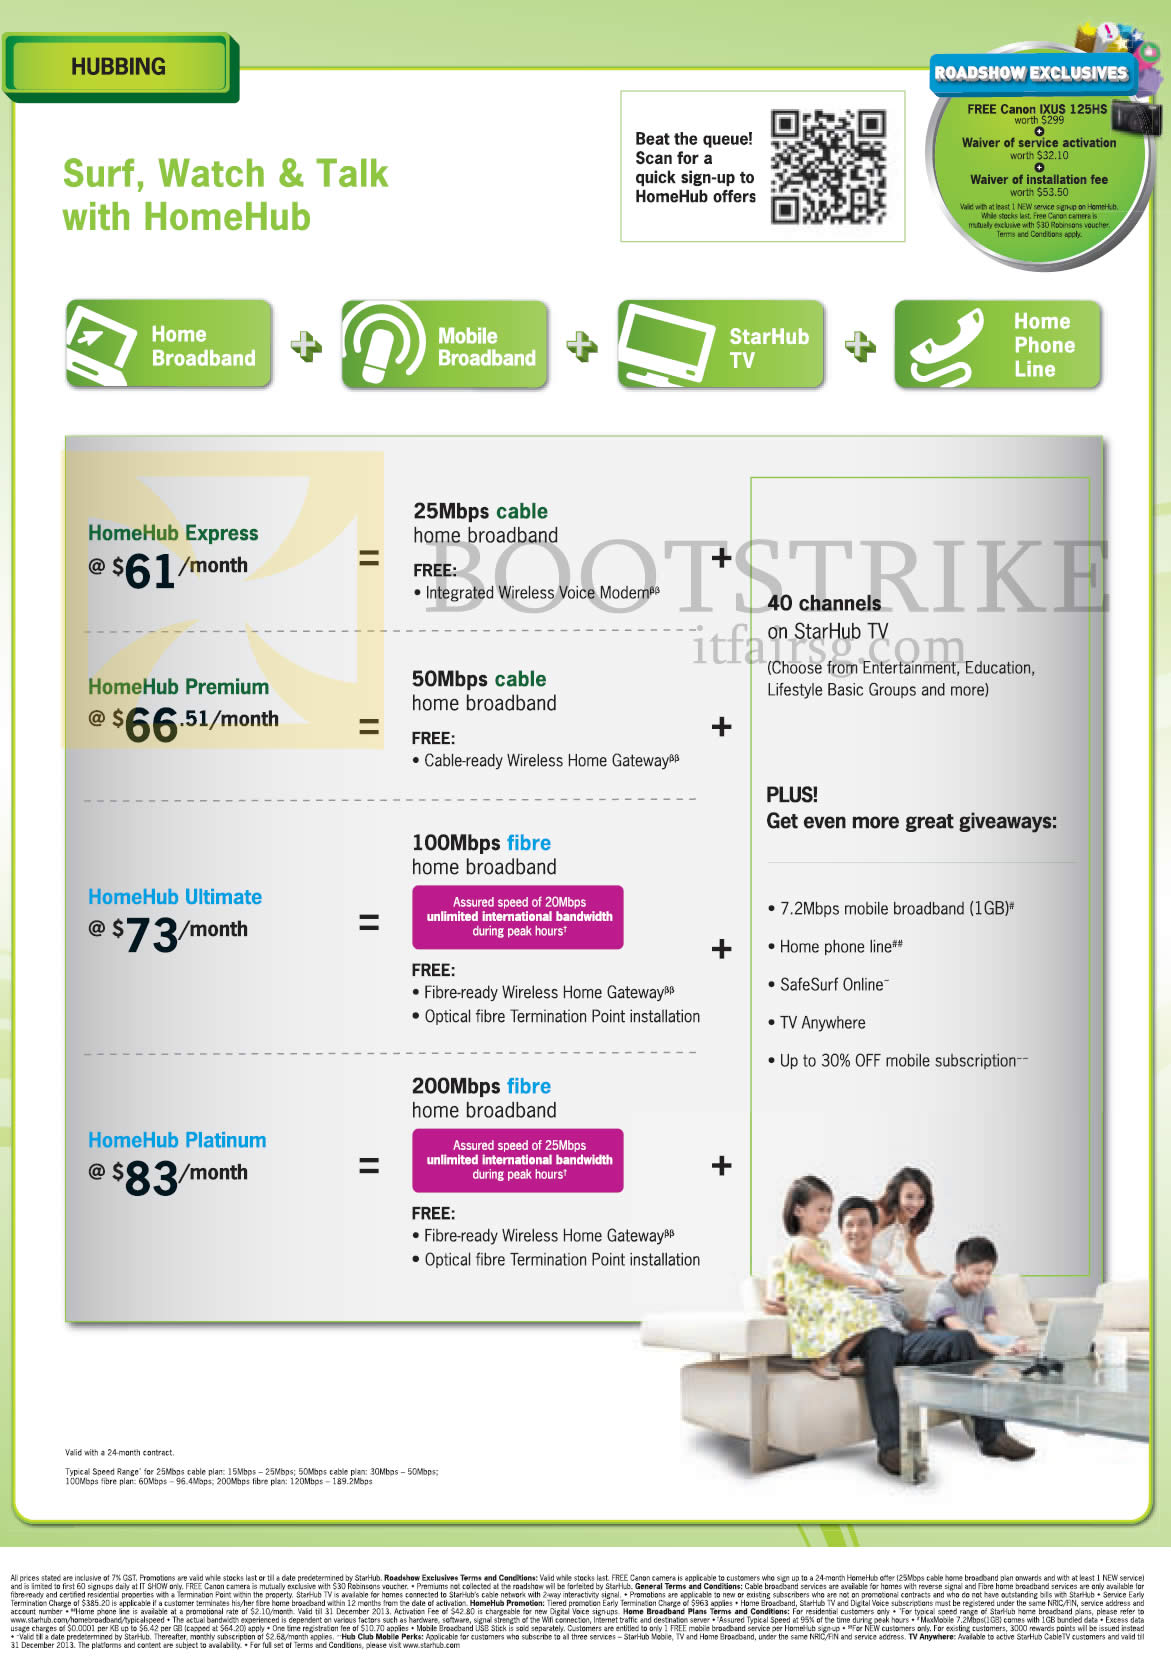 IT SHOW 2013 price list image brochure of Starhub Hubbing HomeHub Express, Premium, Ultimate, Platinum